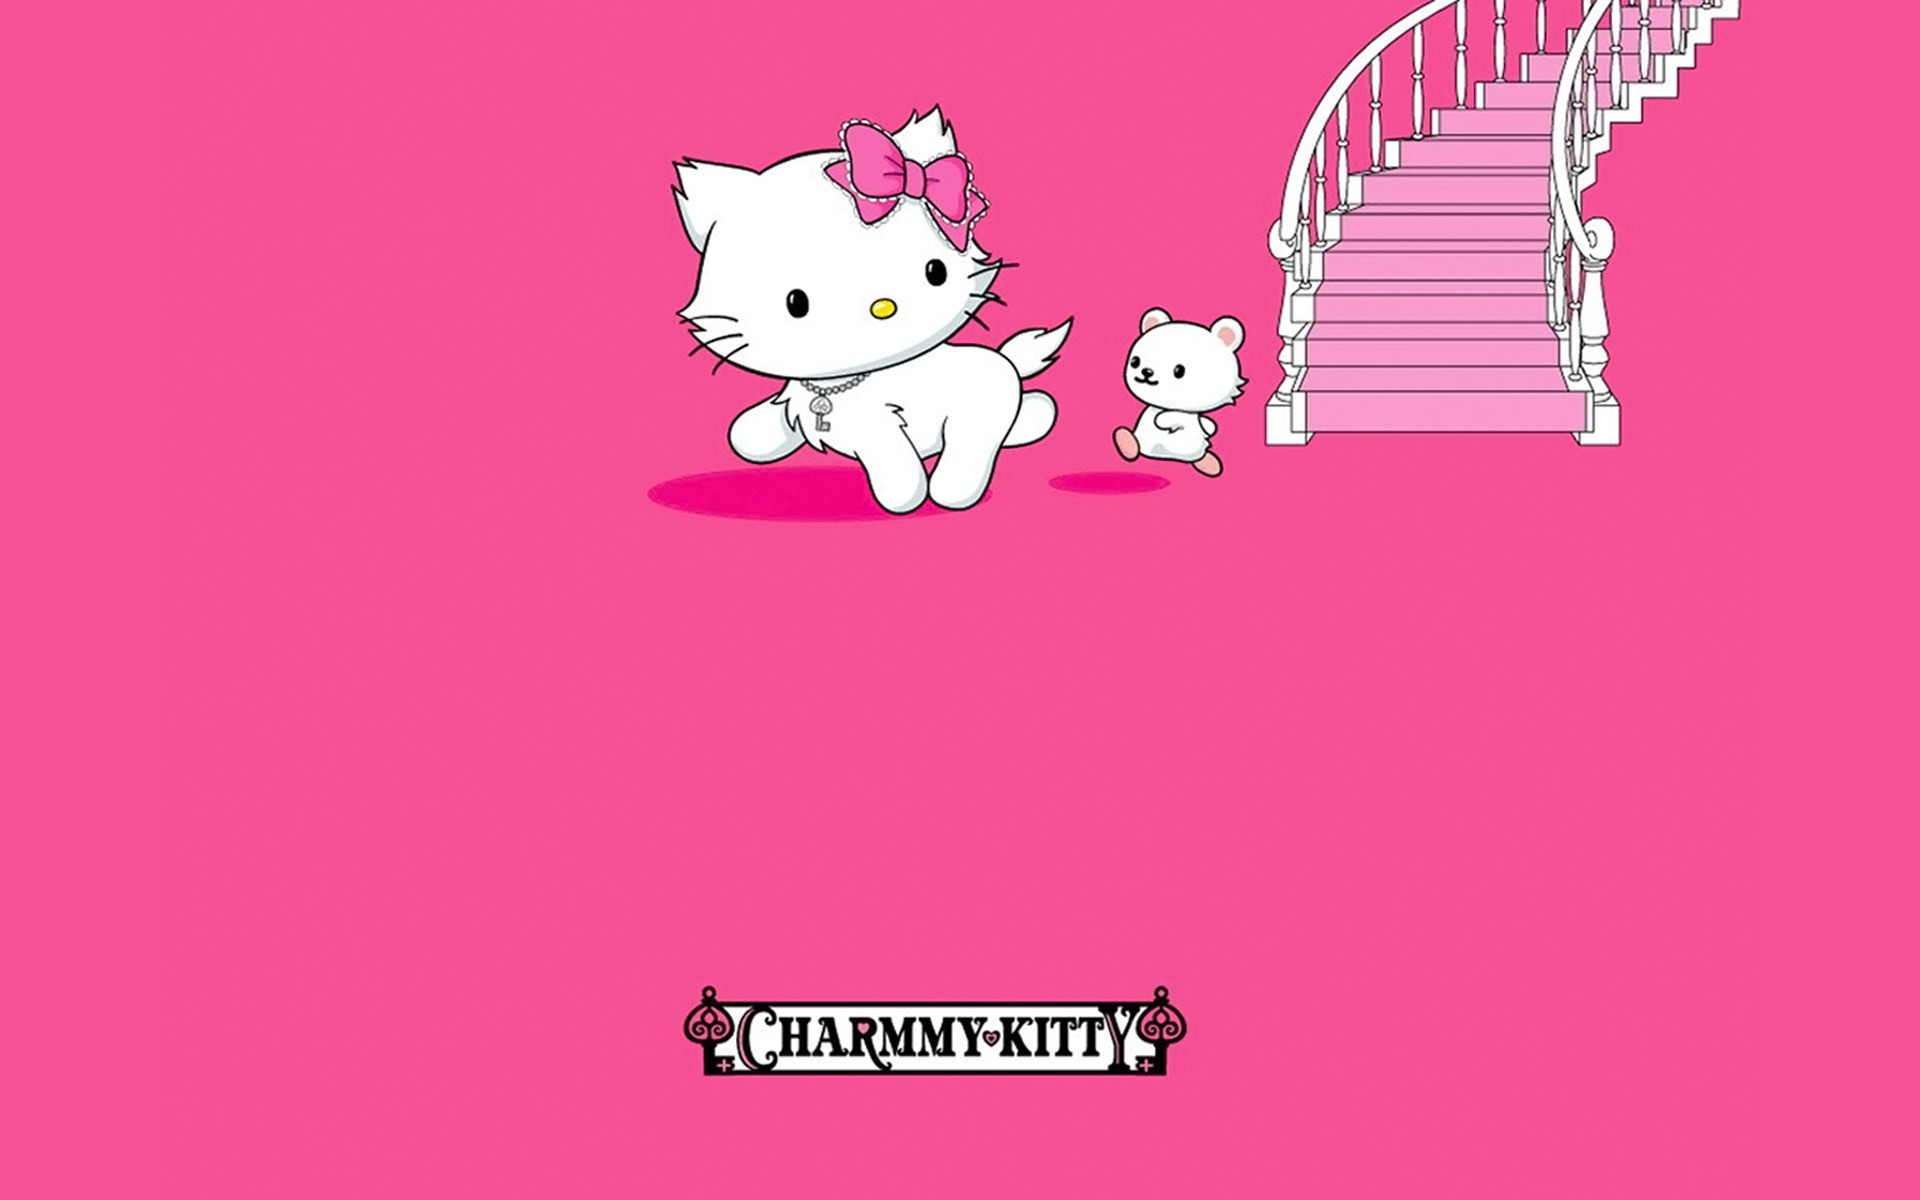 Fantastic Wallpaper Hello Kitty Vintage - 725111-beautiful-hello-kitty-wallpaper-for-pc-1920x1200  Pictures_69532.jpg